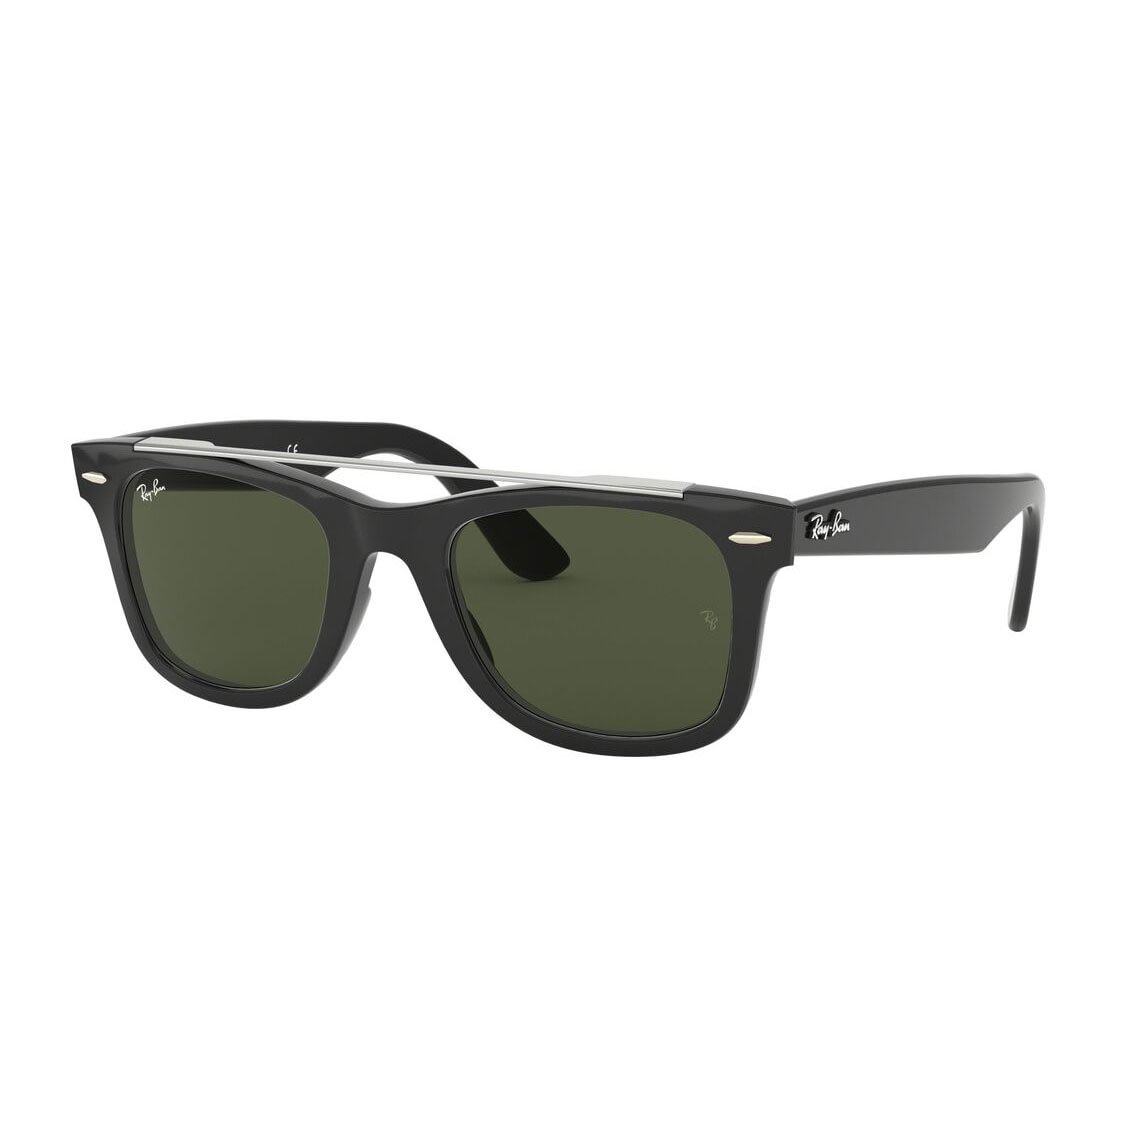 Ray-Ban Wayfarer Double Bridge RB4540 601/31 5022